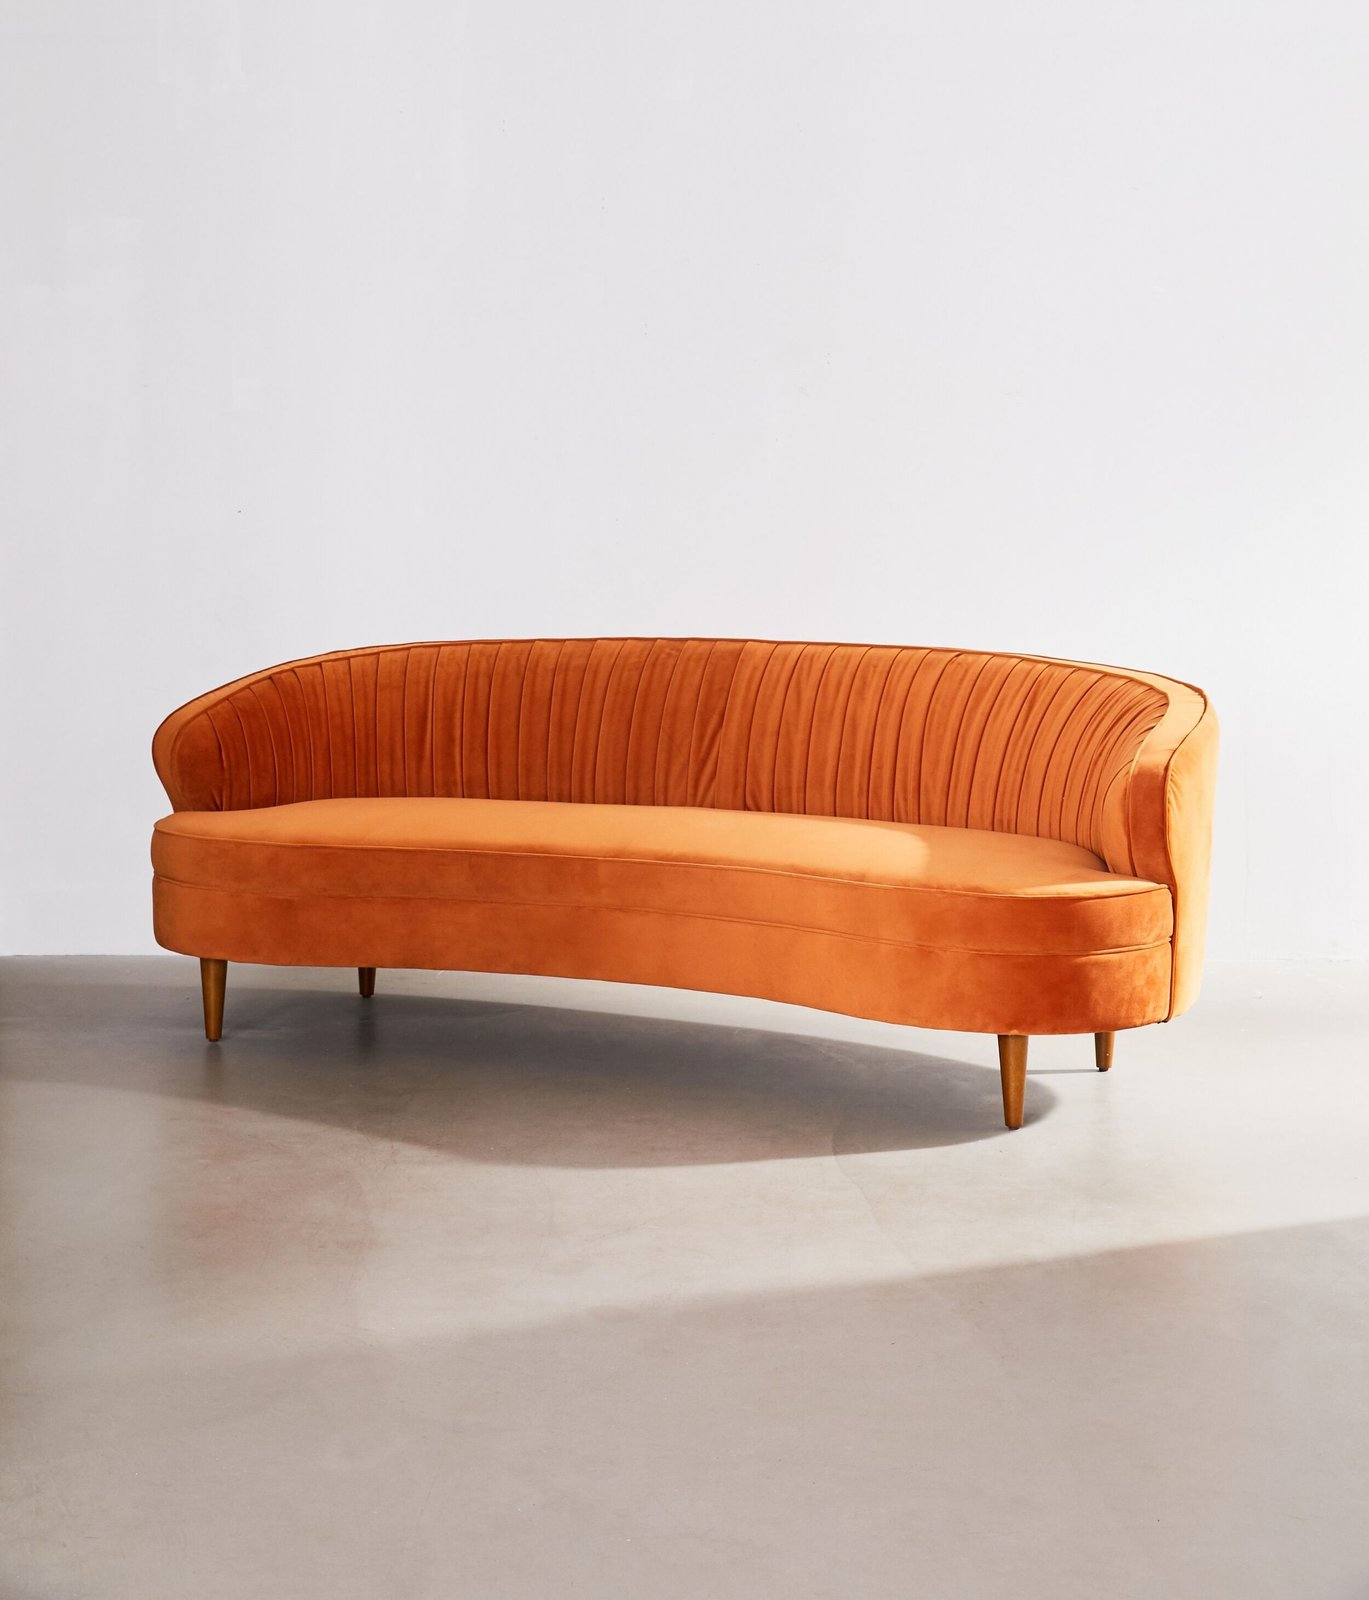 Outstanding Urban Outfitters Camila Velvet Sofa By Urban Outfitters Dwell Bralicious Painted Fabric Chair Ideas Braliciousco